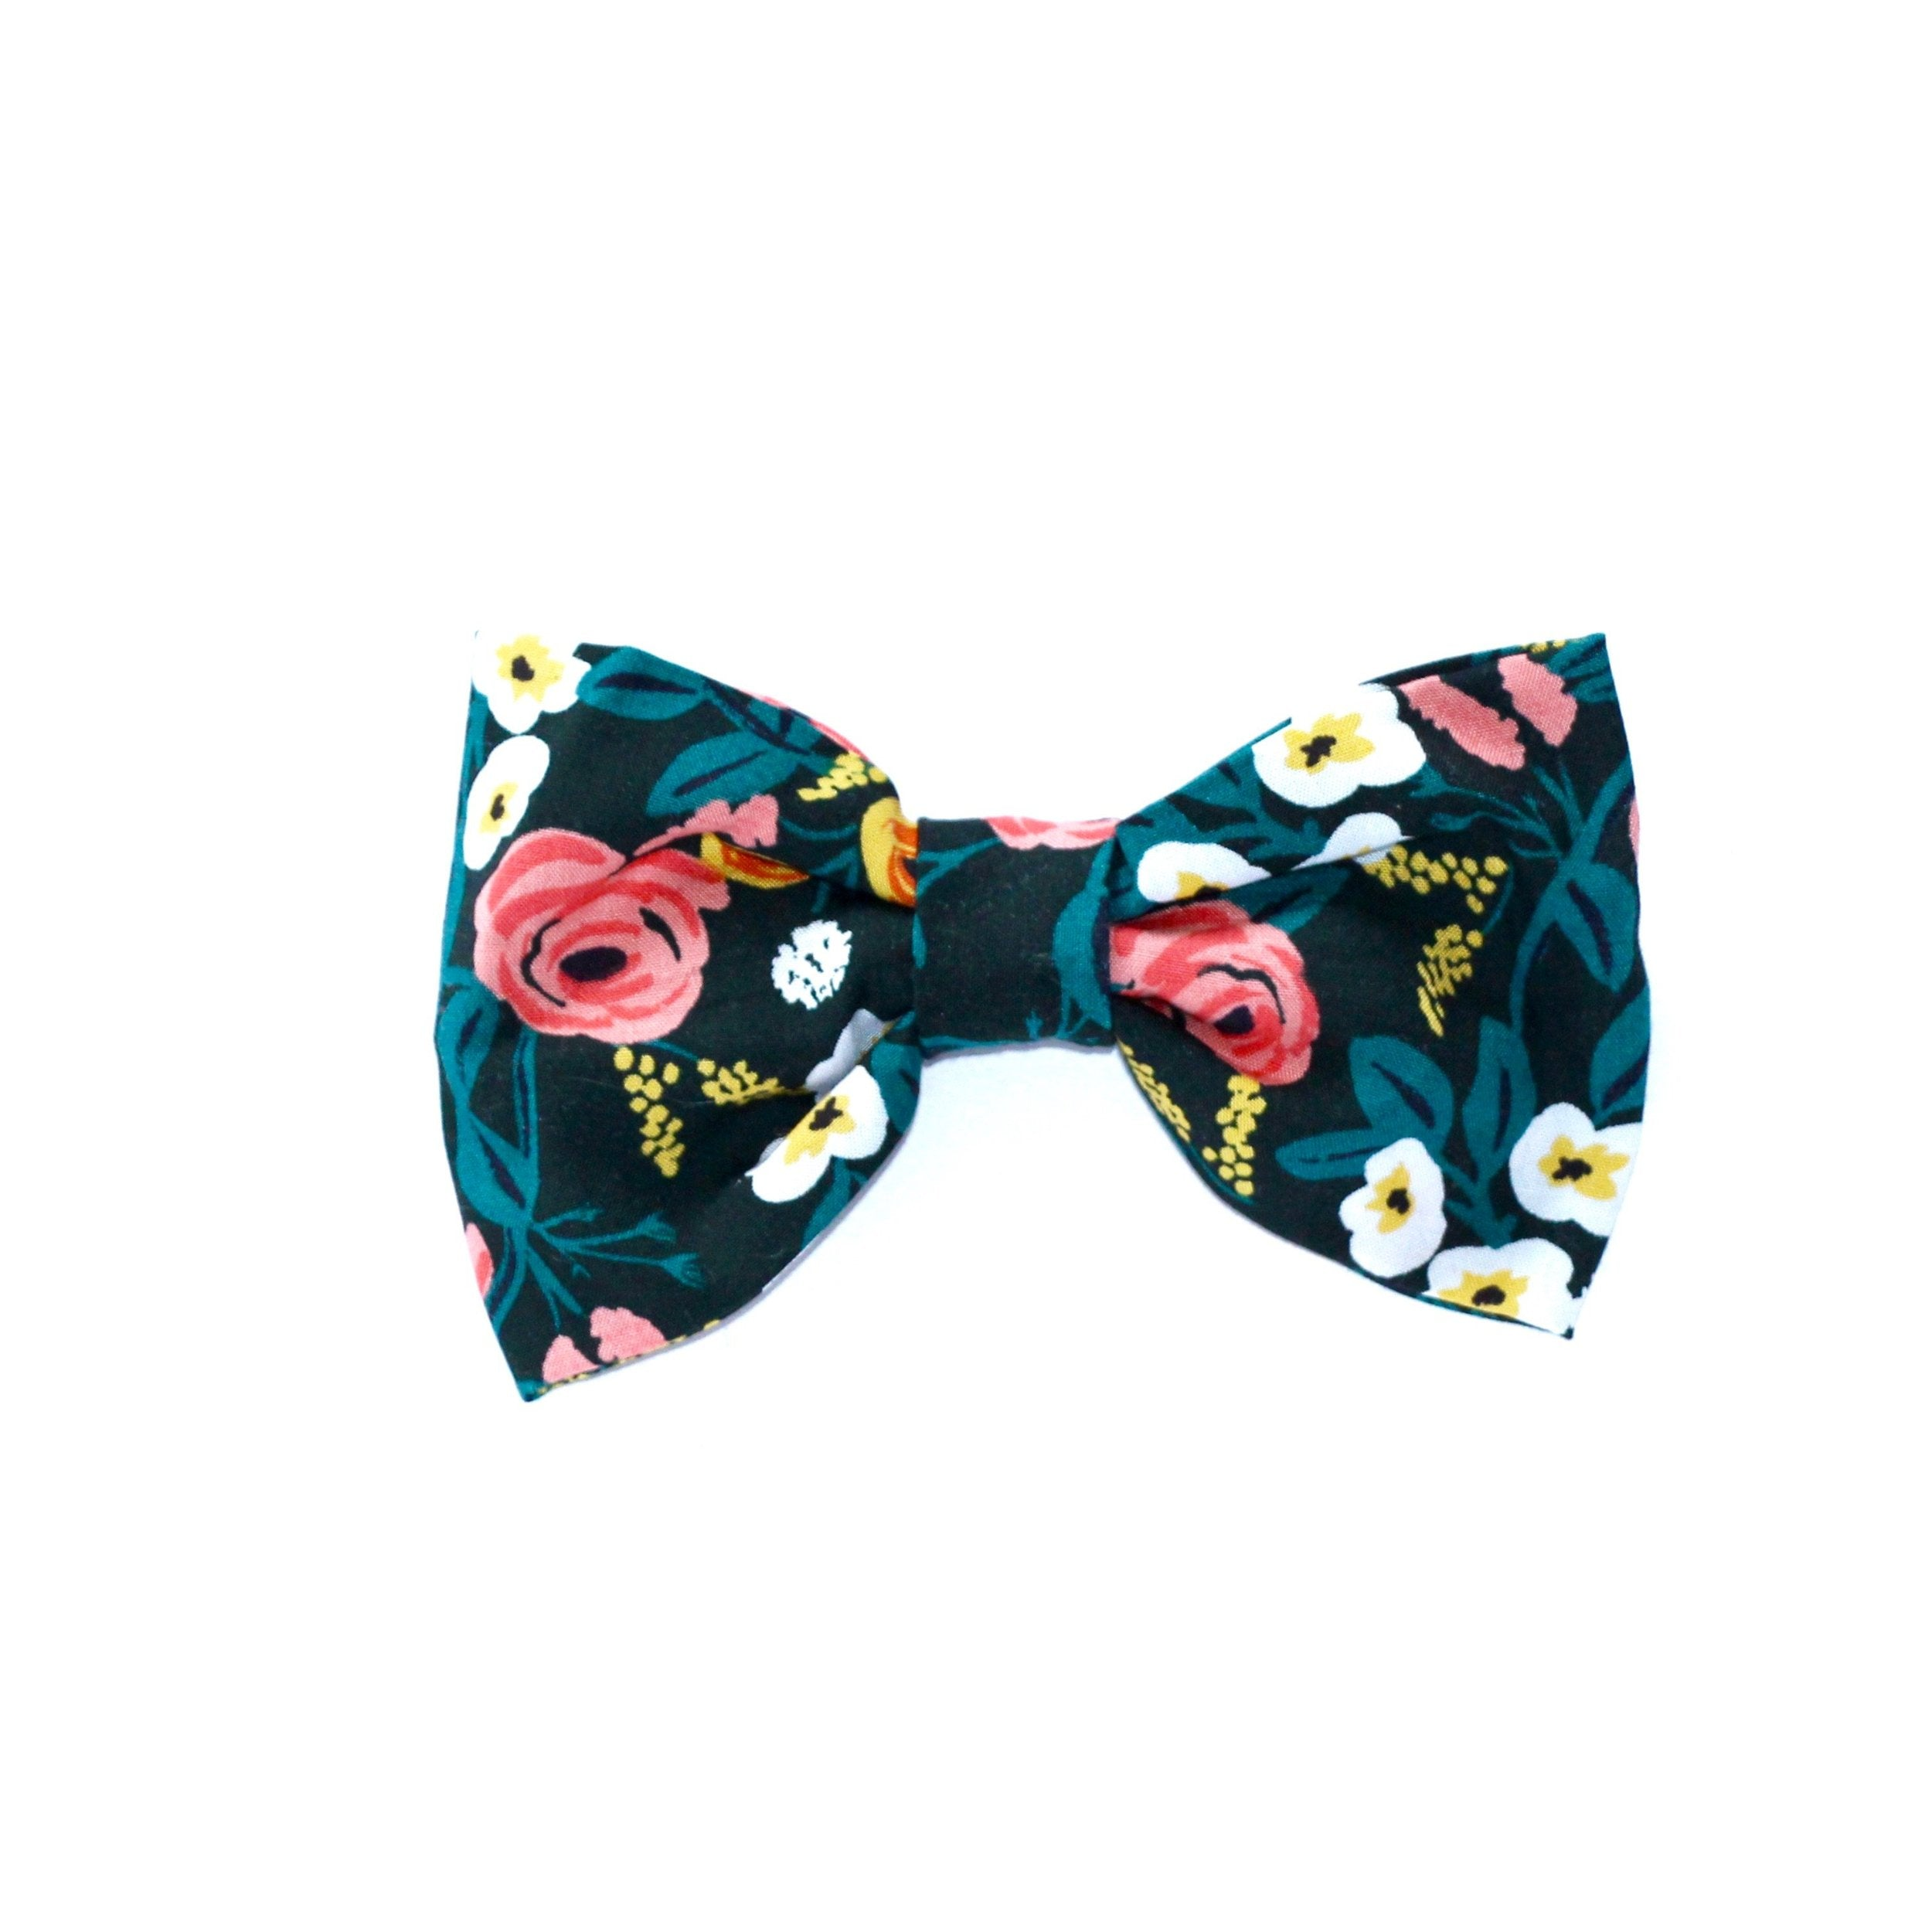 Clothes Companion Dog and Pet Bows and Bow Ties Rifle Paper Co.